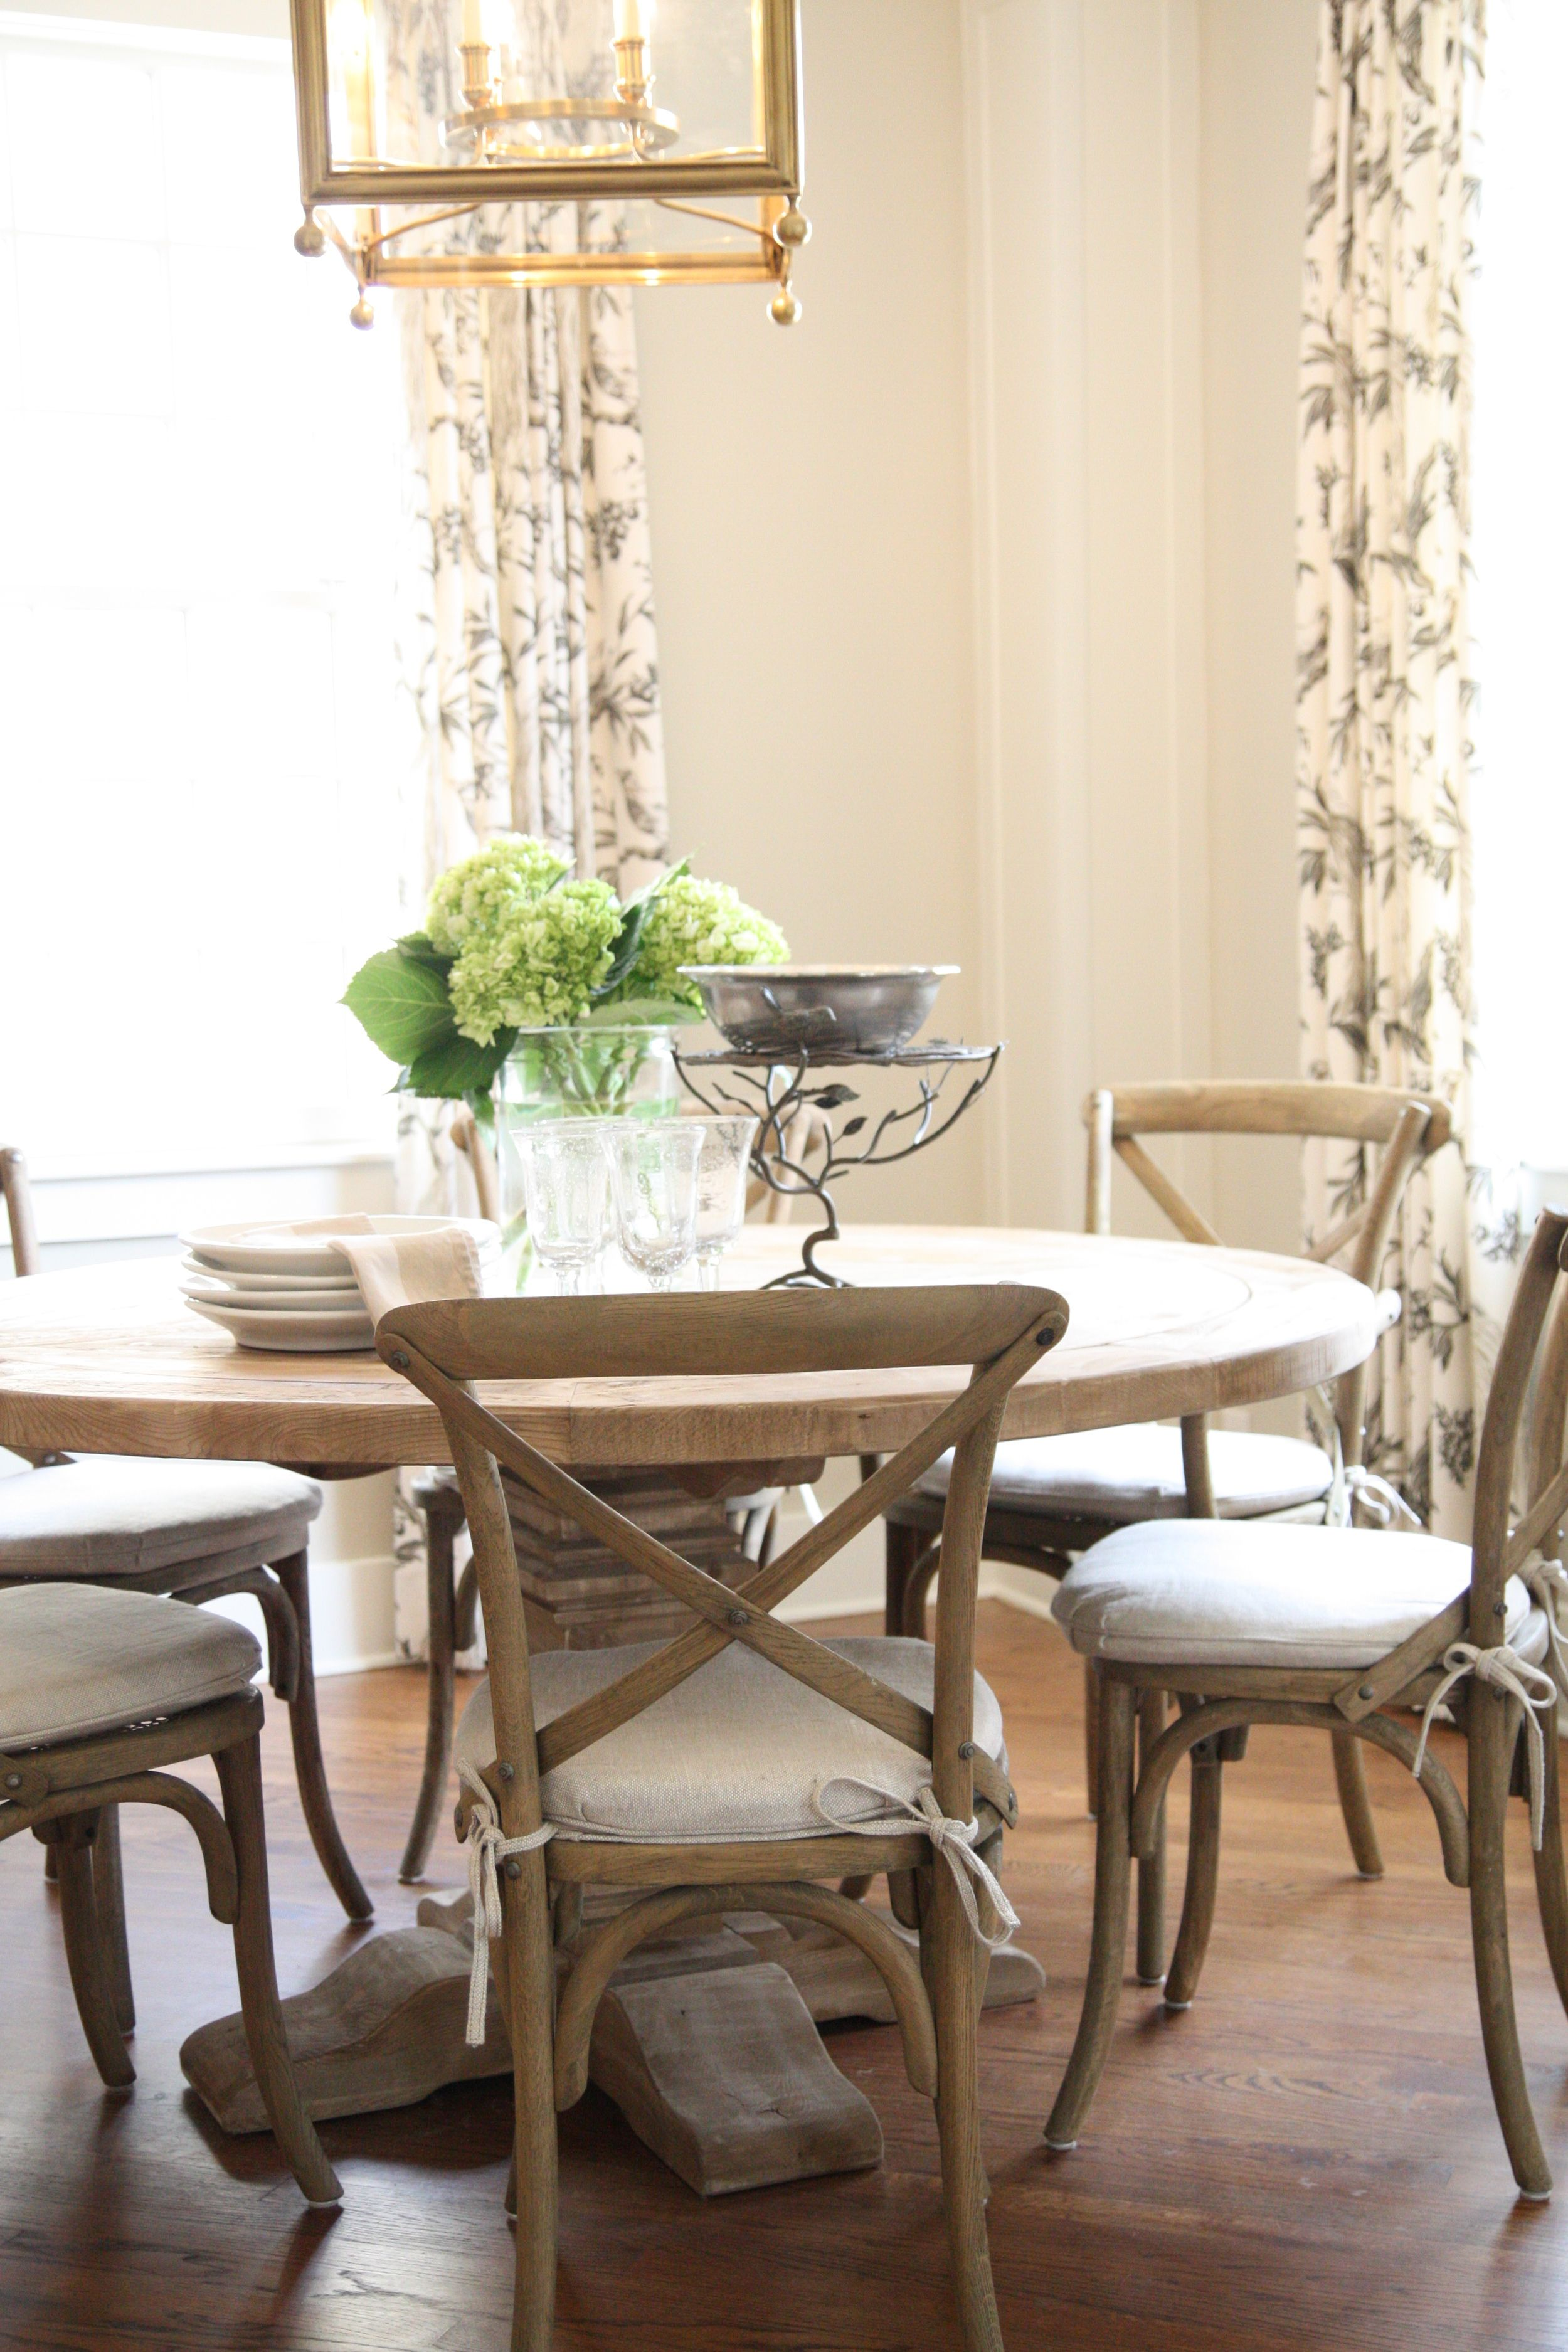 wooden circular dining room table | m. e. beck design | dining